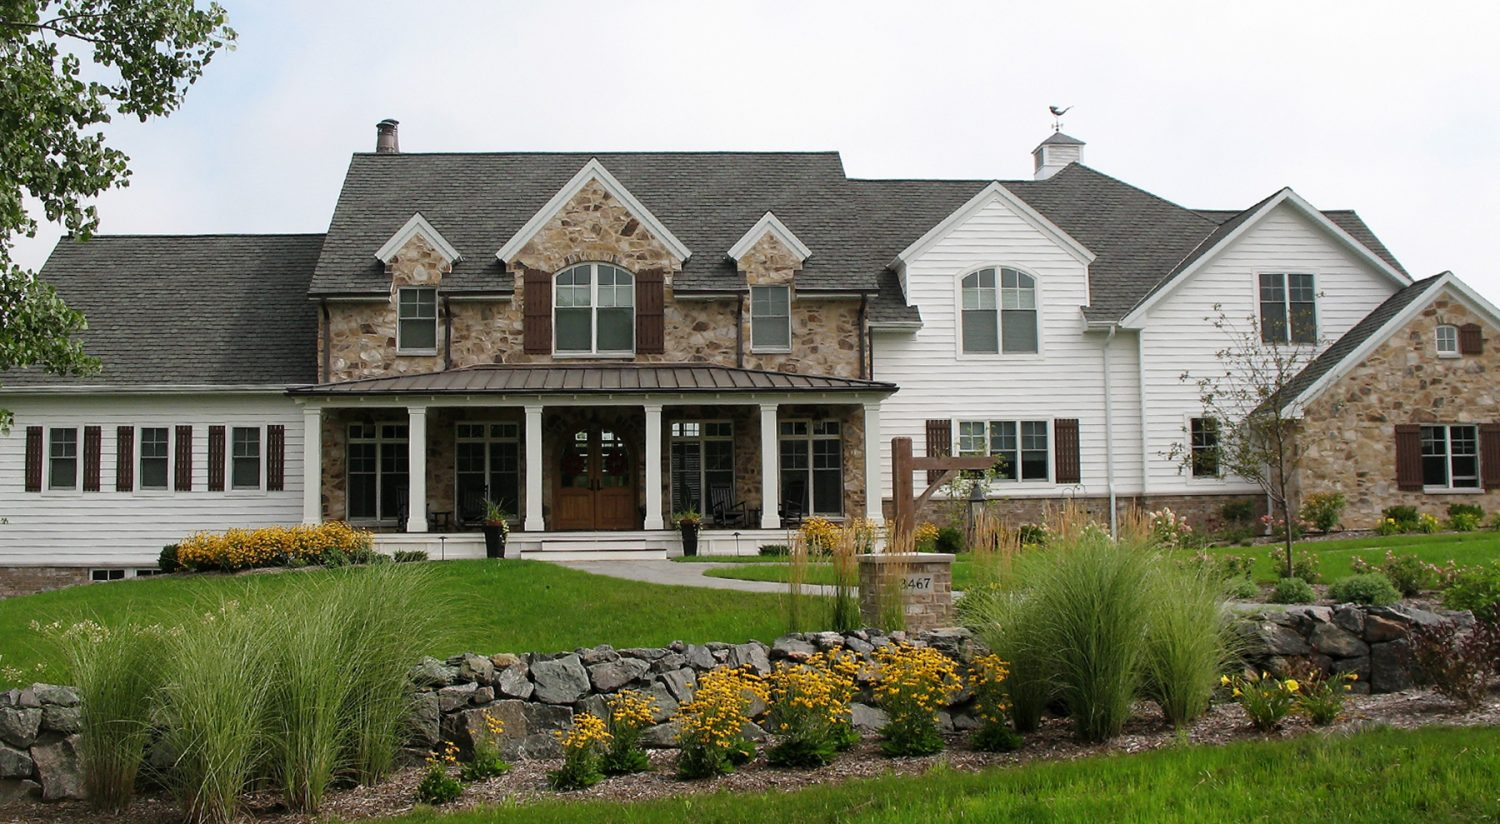 A large house with a manicured front lawn, featuring a retaining wall with flowers and shrubs in a mulch bed. It is a good example of our landscape design work.